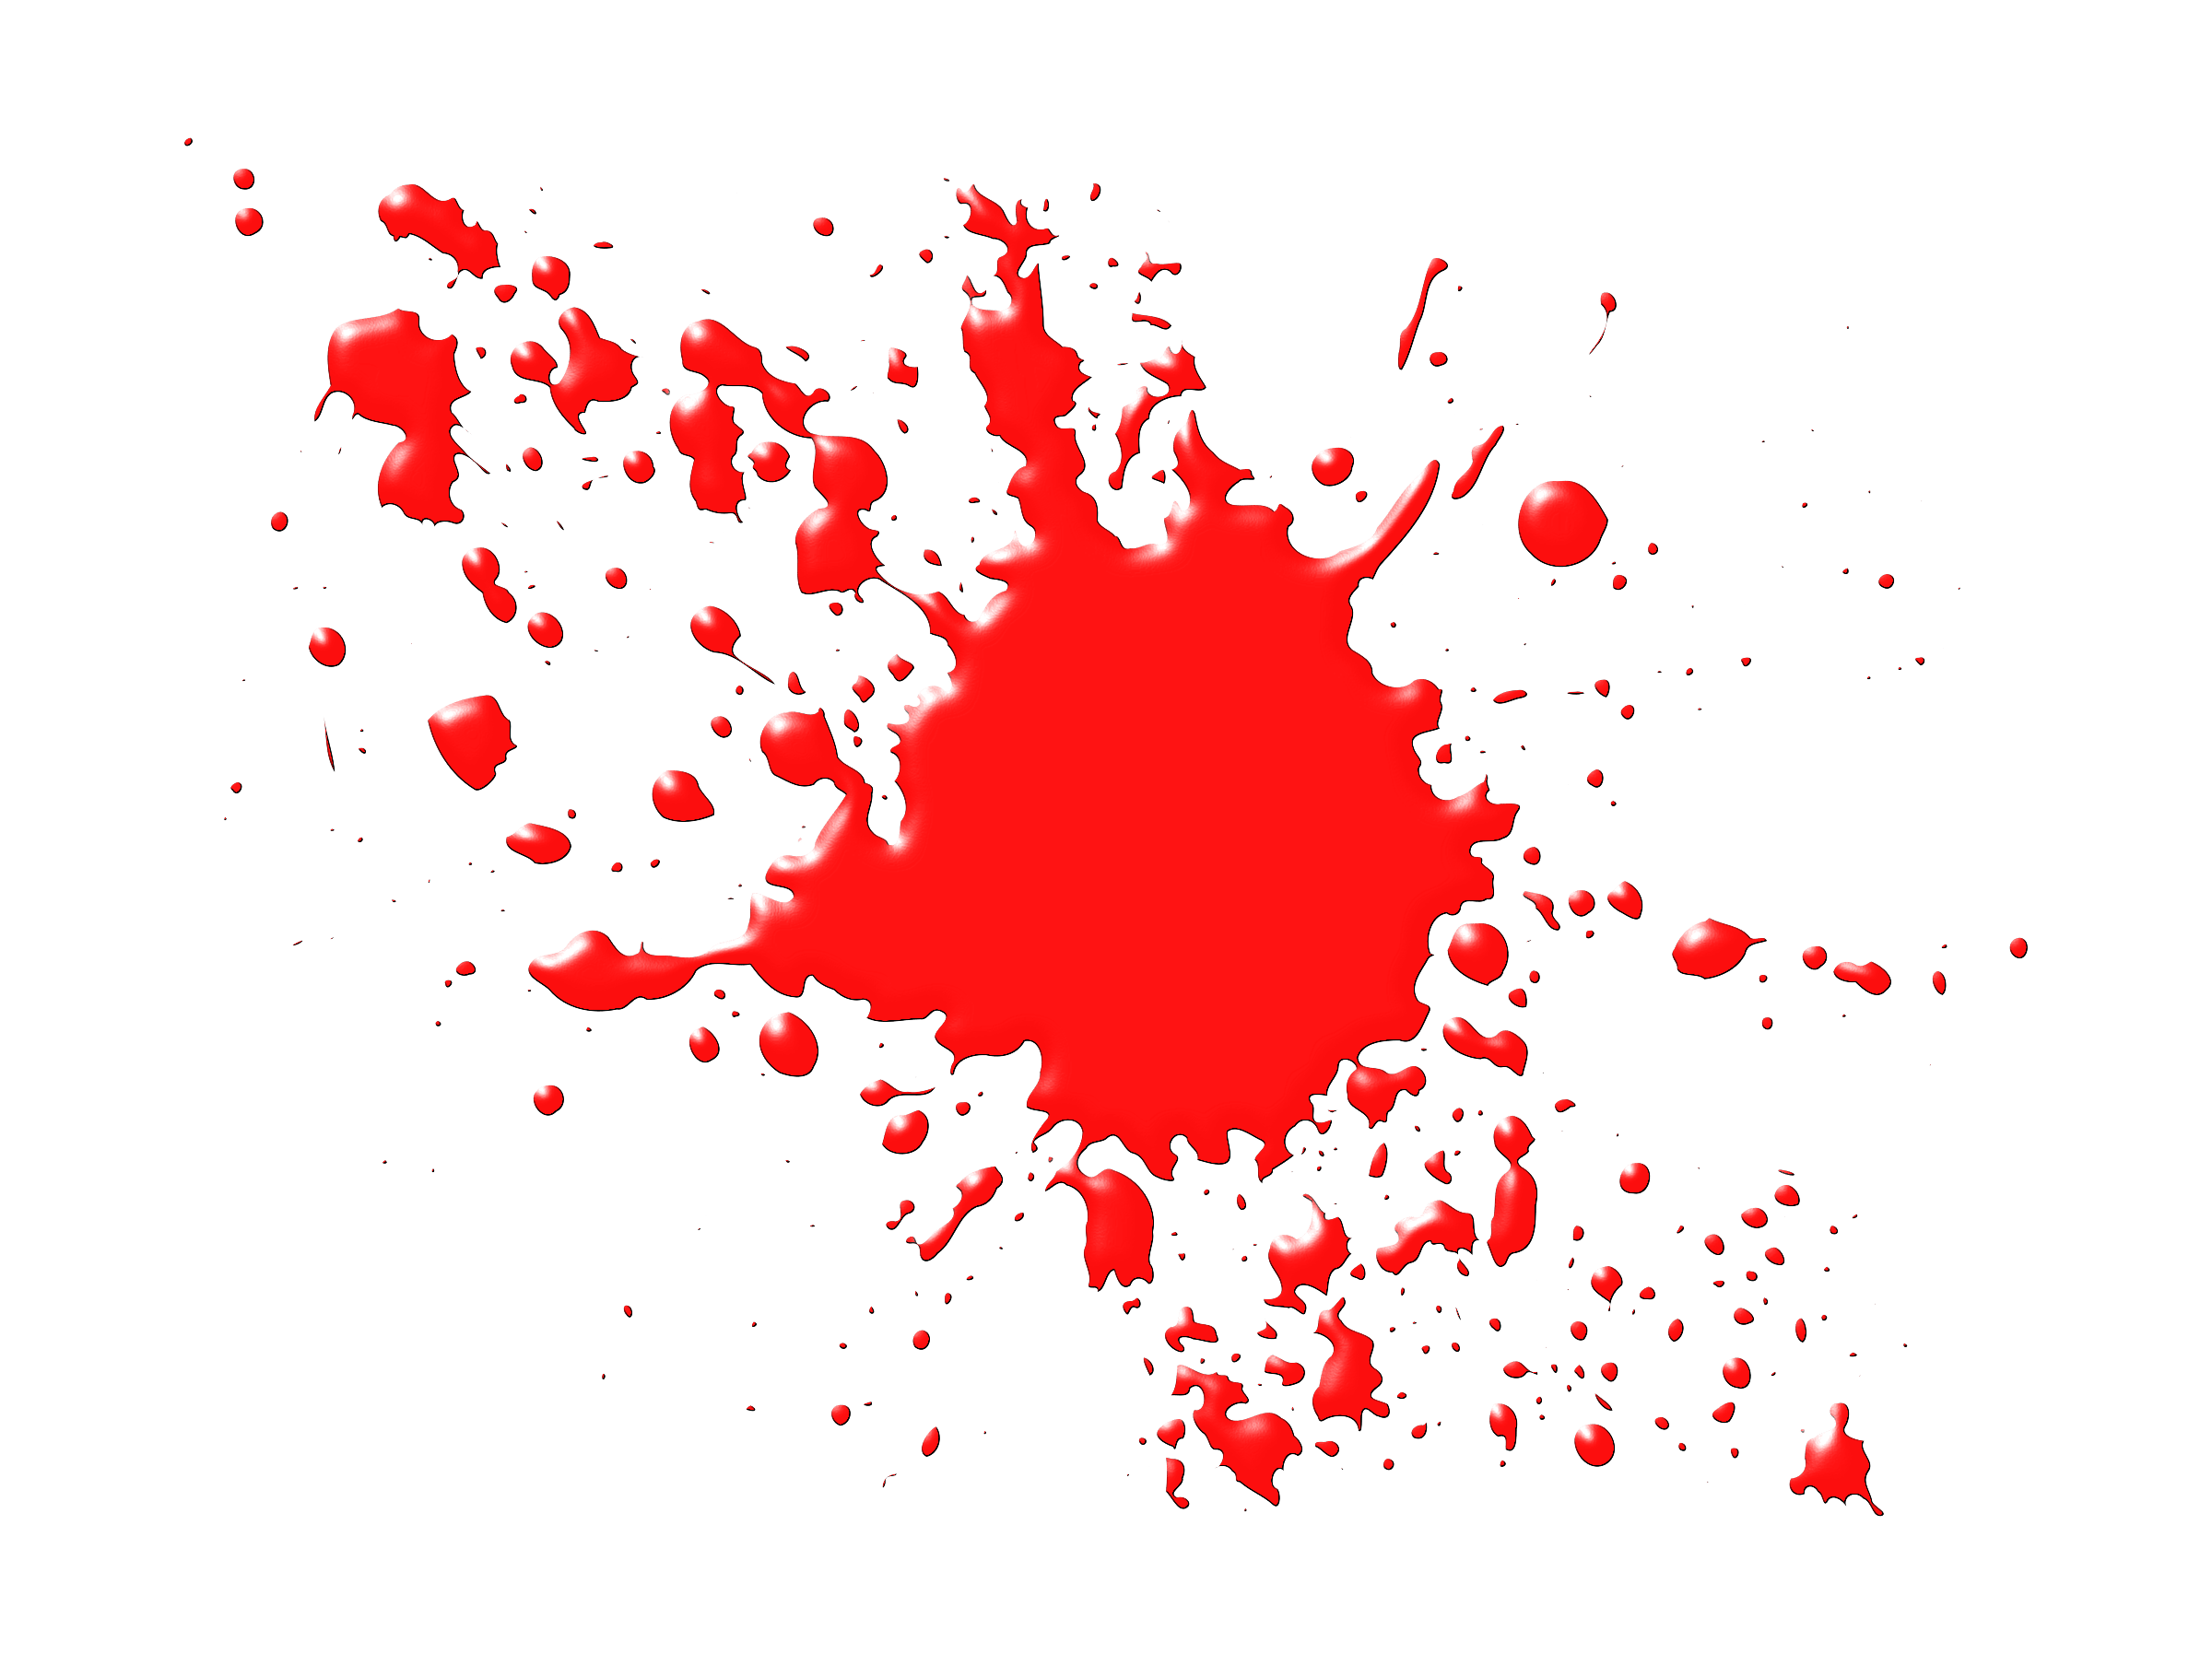 Realistic blood dripping png. Clear background splatters